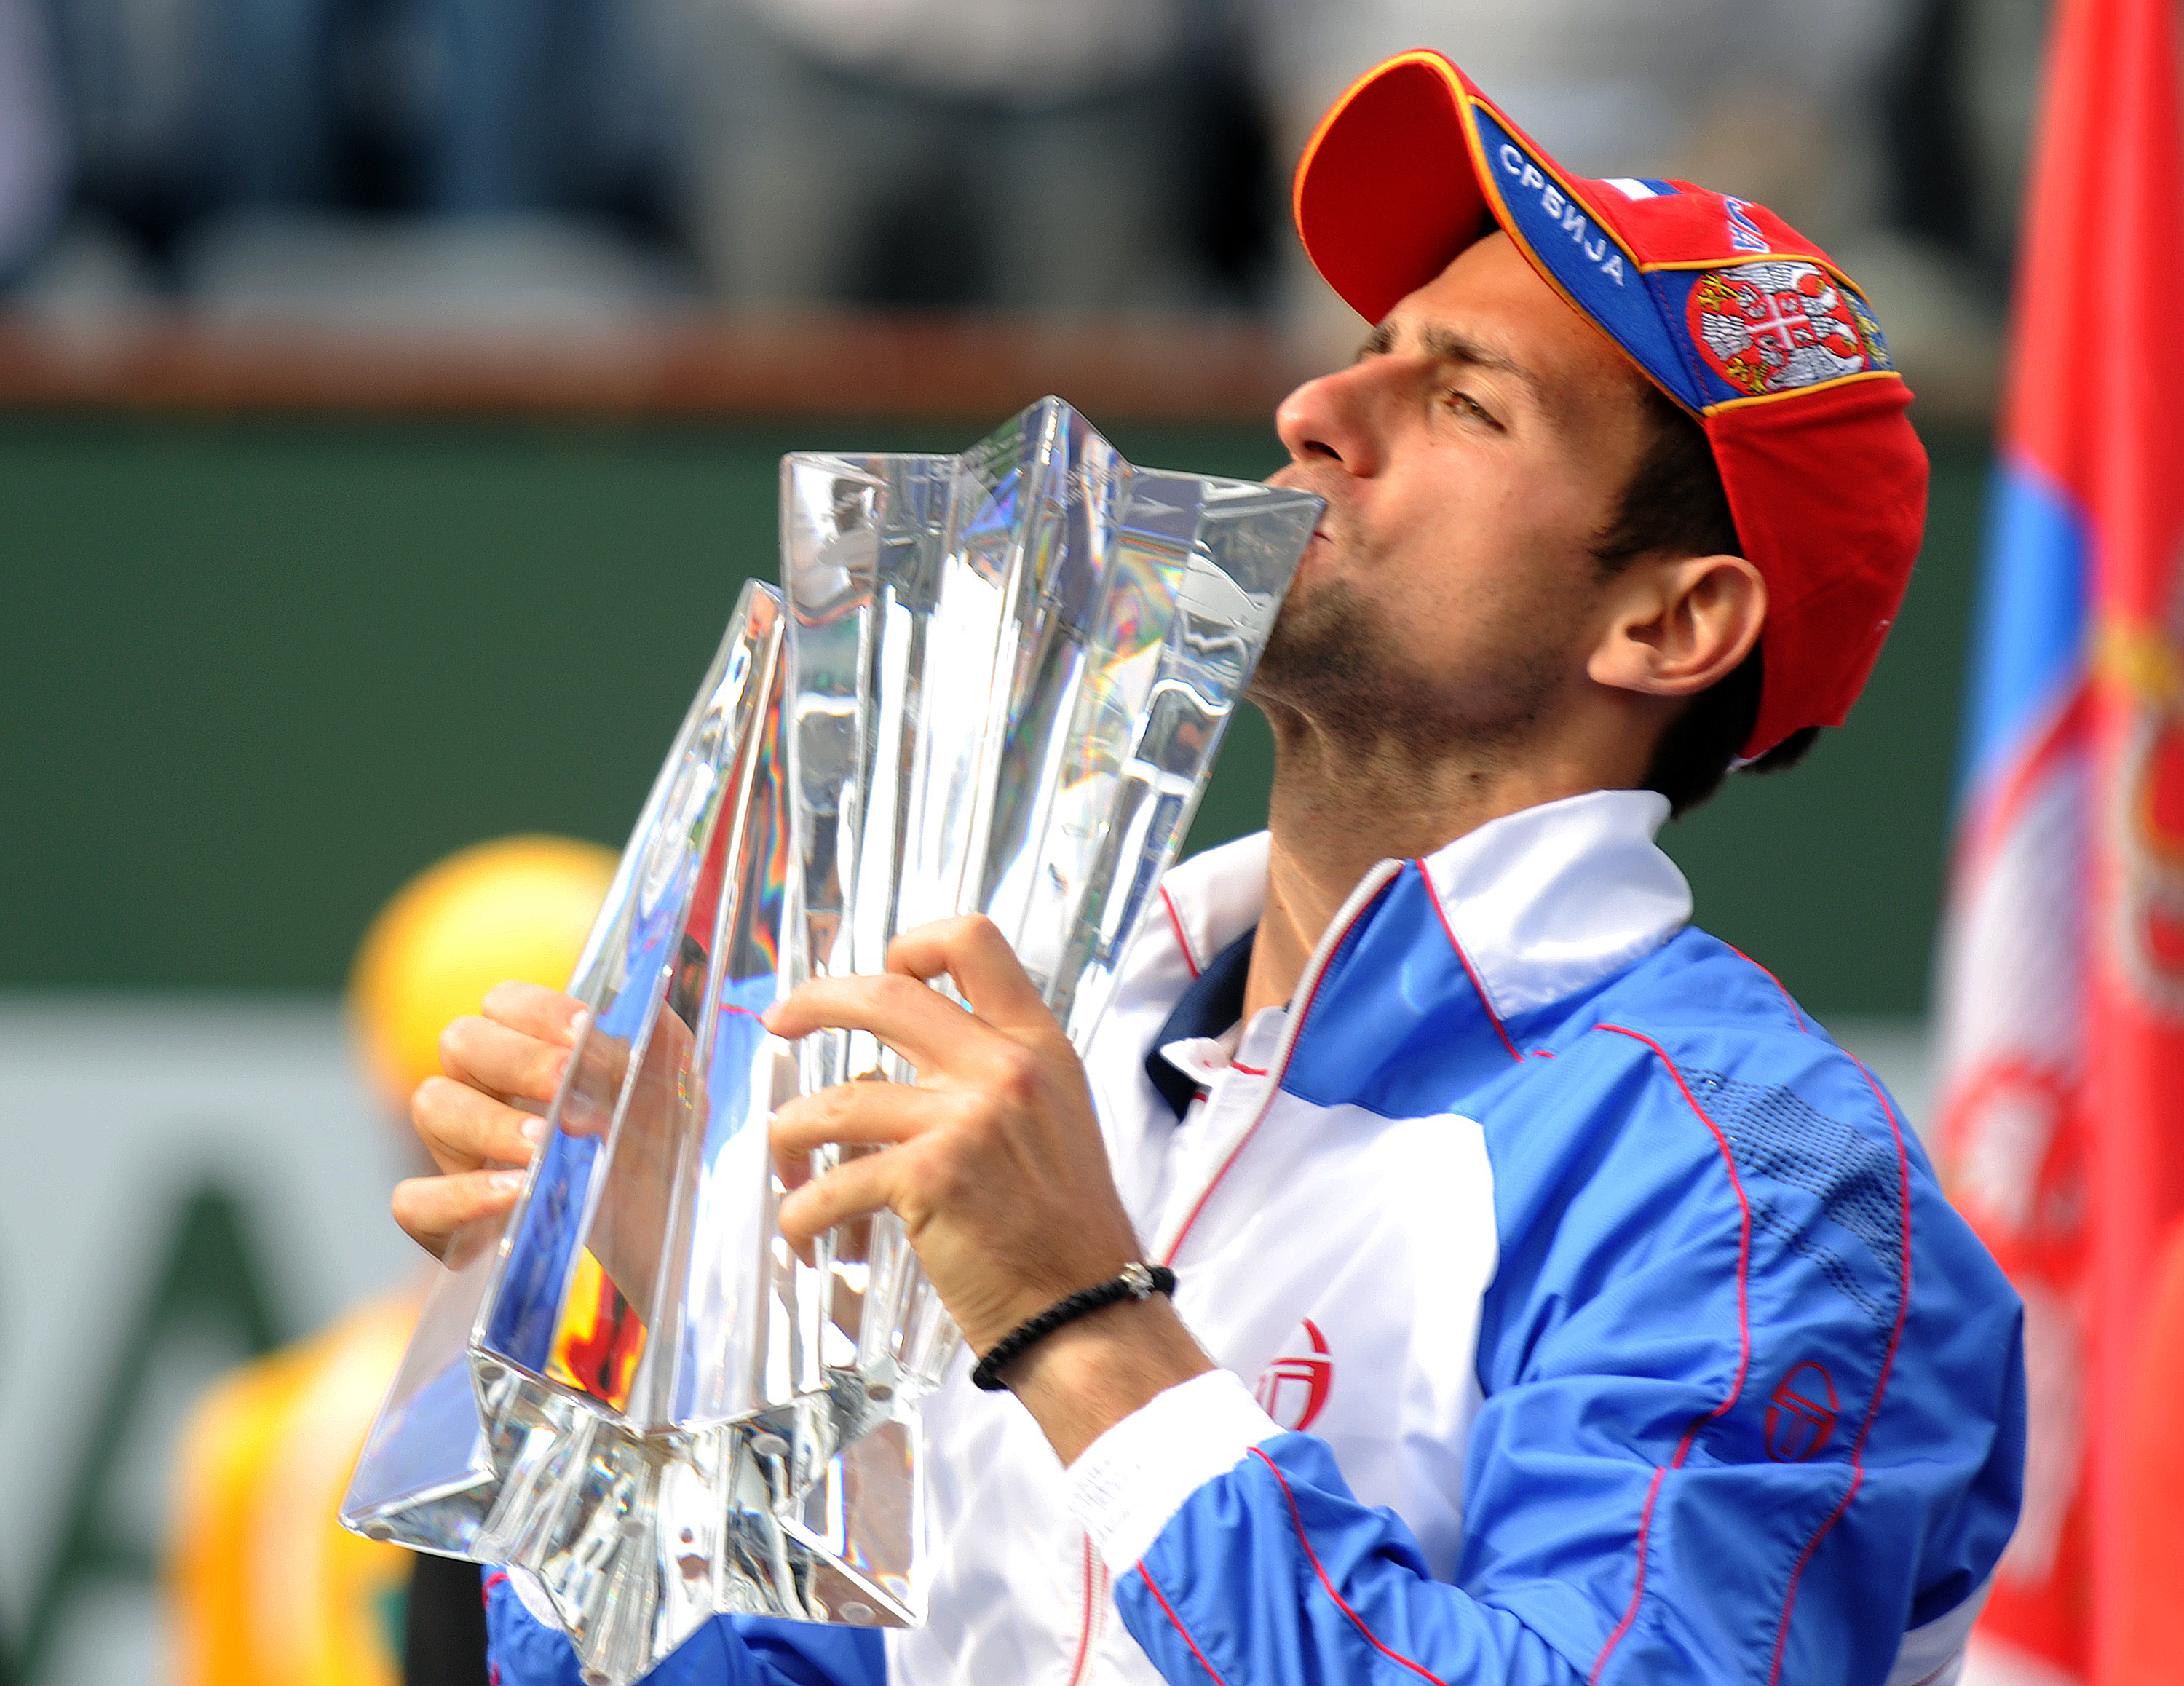 And the red, white and blue attire won him an Indian Wells title.